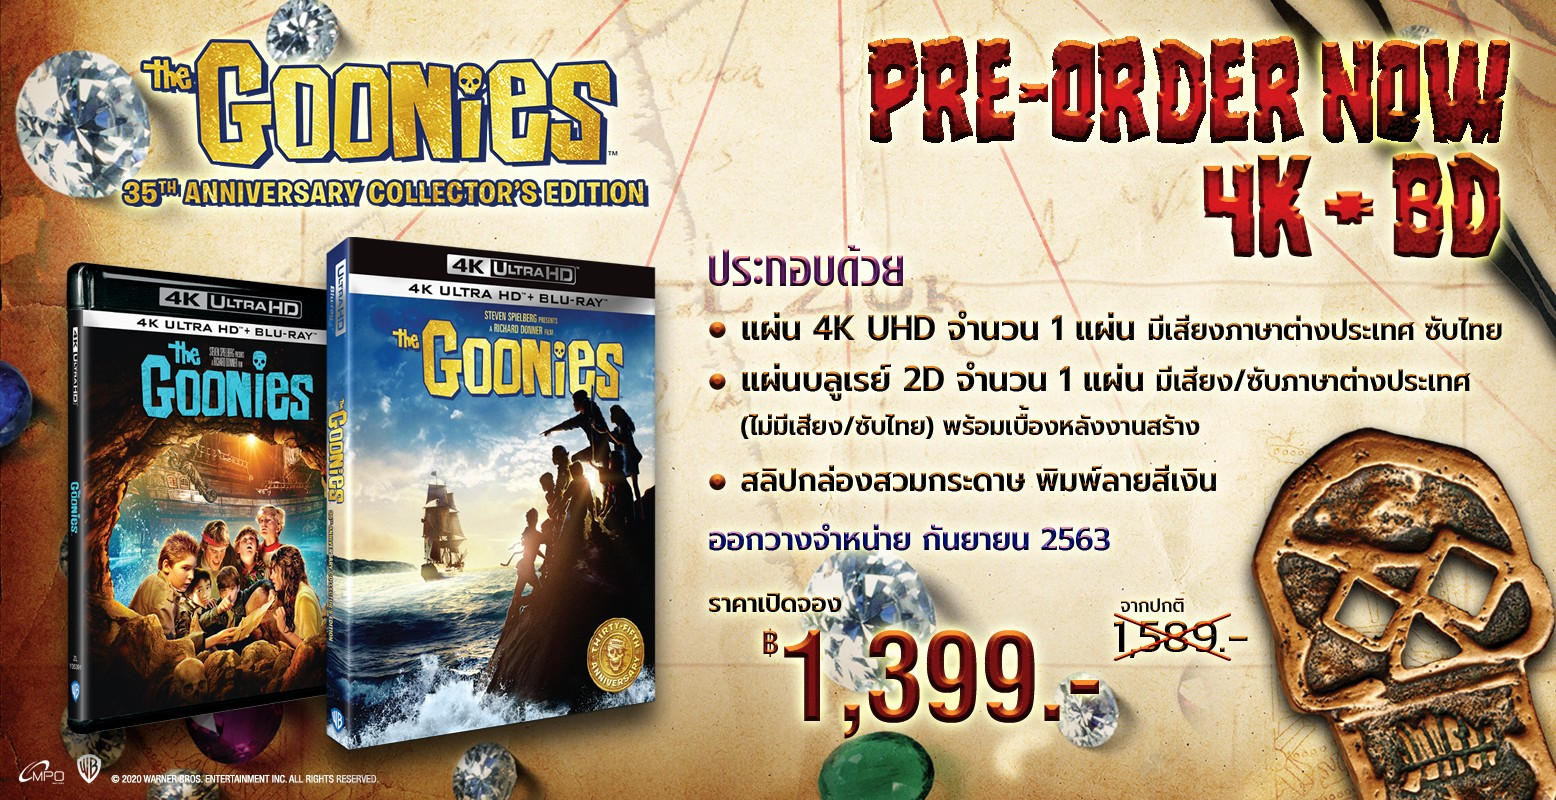 Pre-order The Goonies (1985) 4K Ultra HD includes Blu-ray 2D